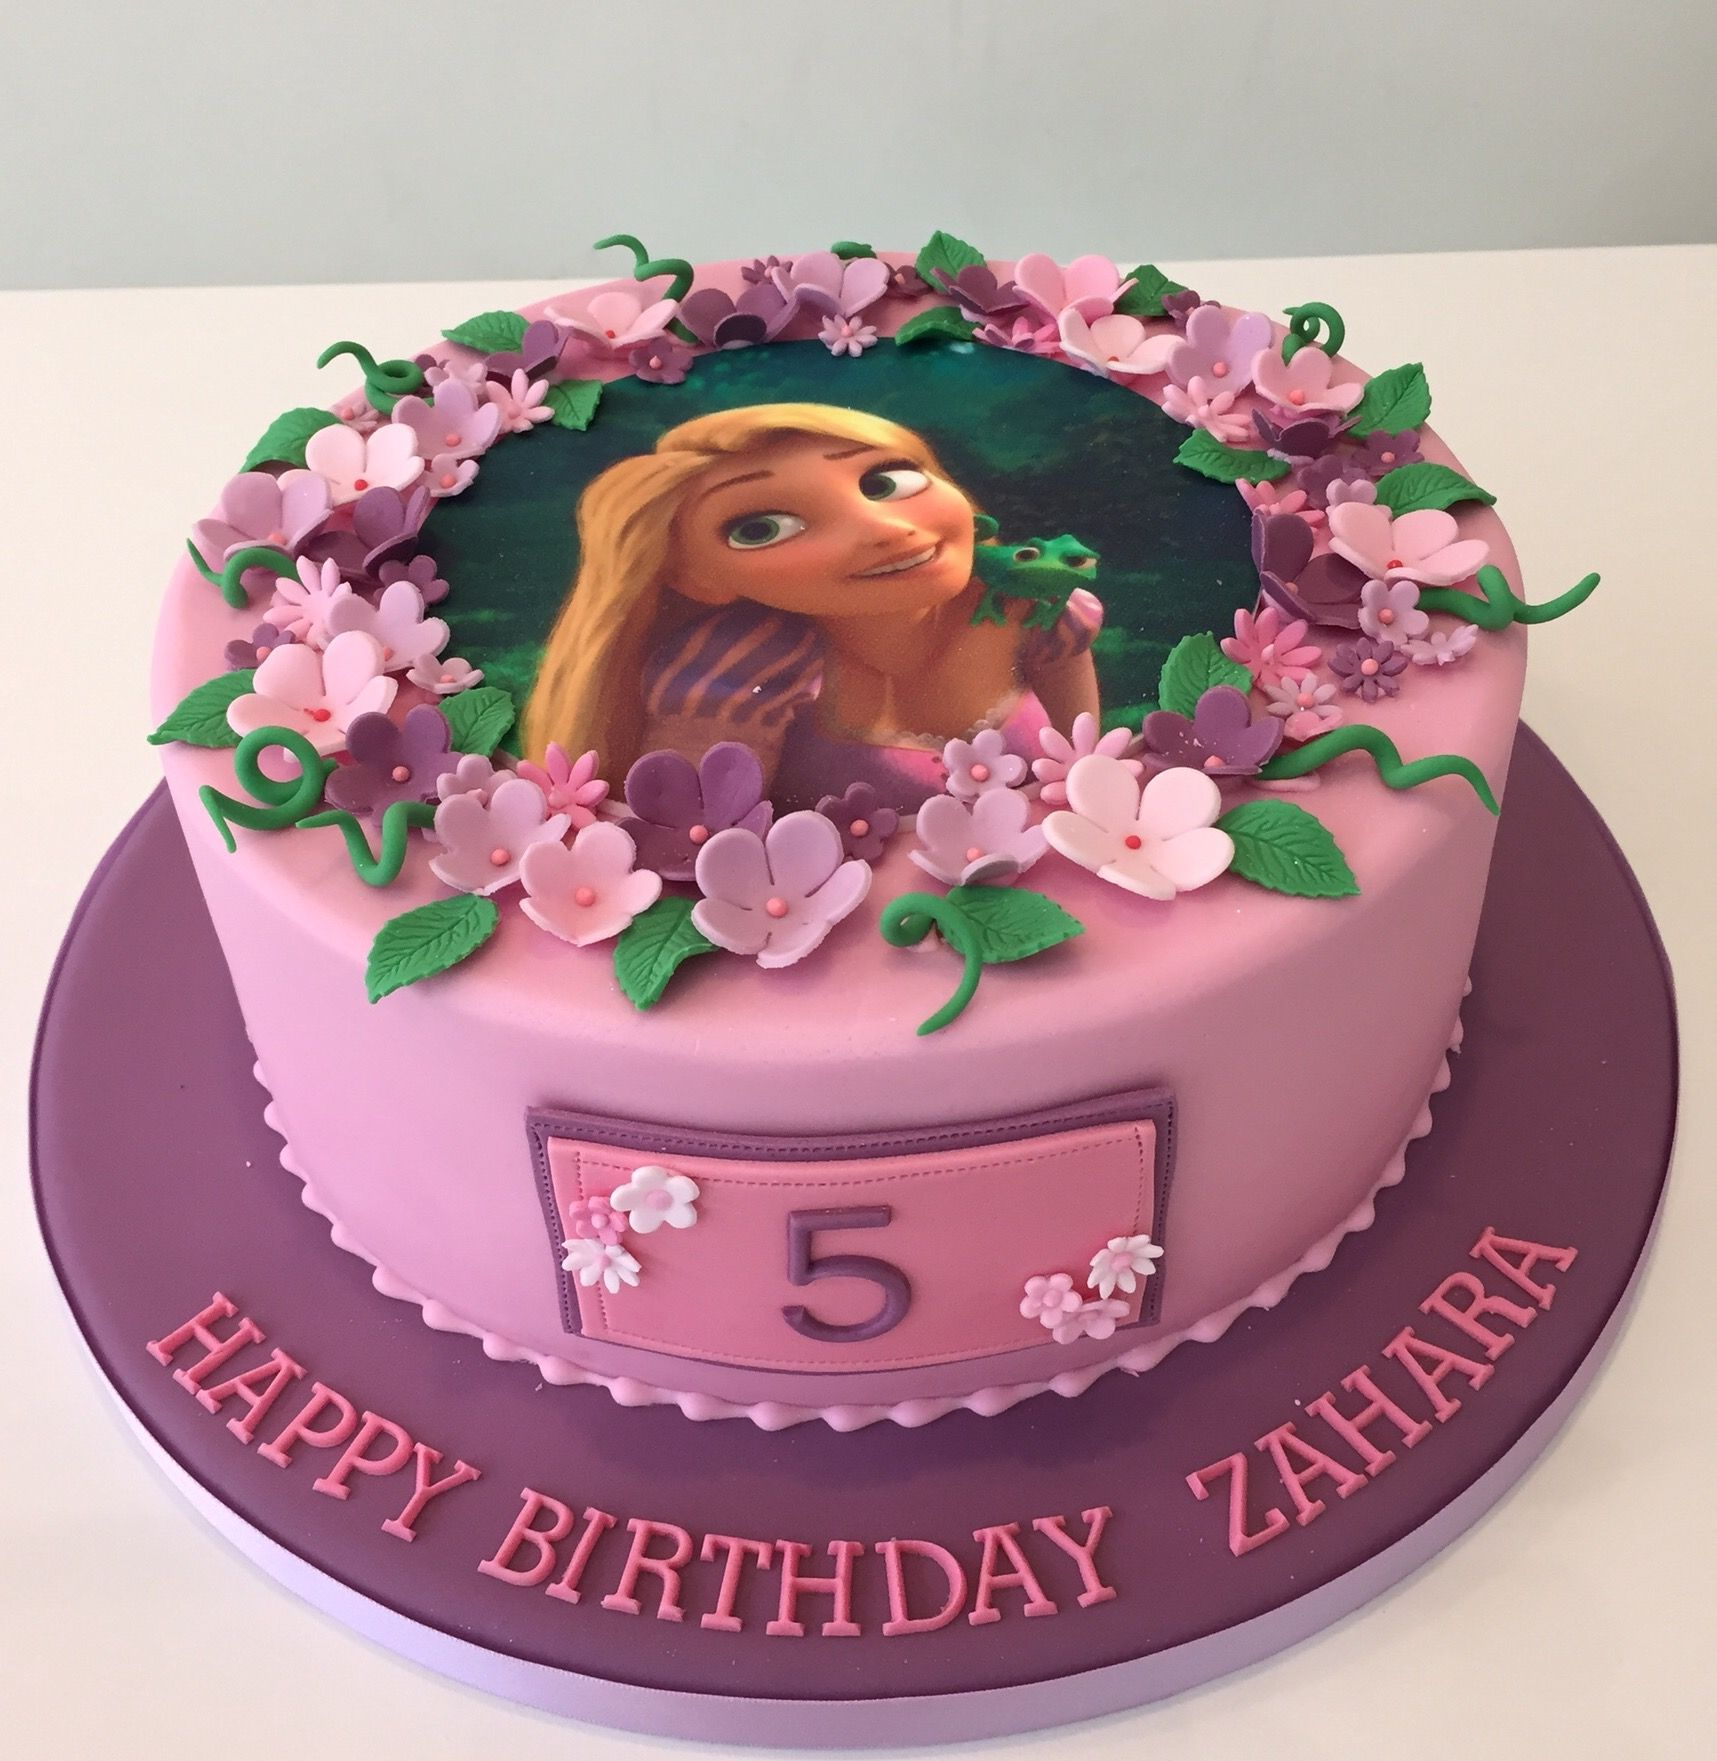 Birthday Cake Edible Pictures : Tangled Rapunzel edible image birthday cake Birthday ...